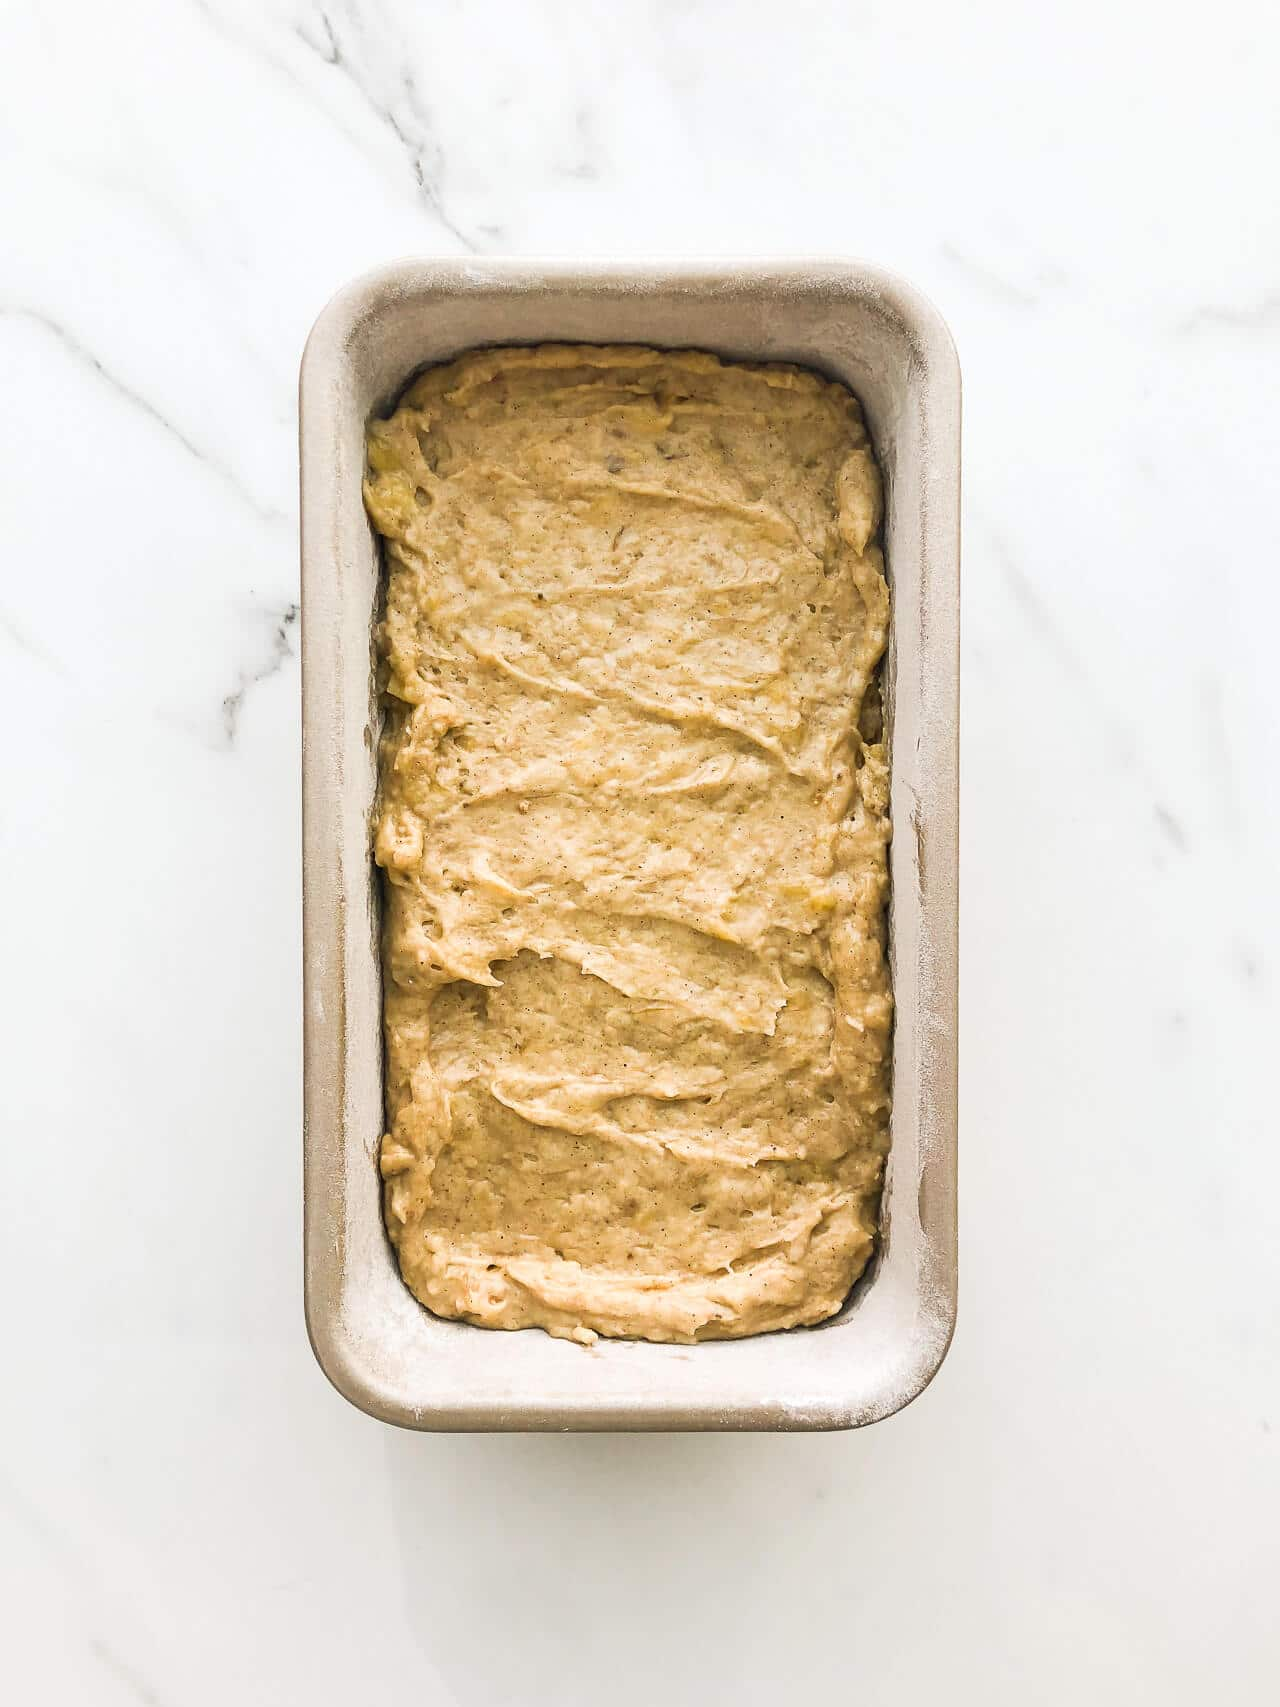 Banana bread batter in a loaf cake pan on marble surface